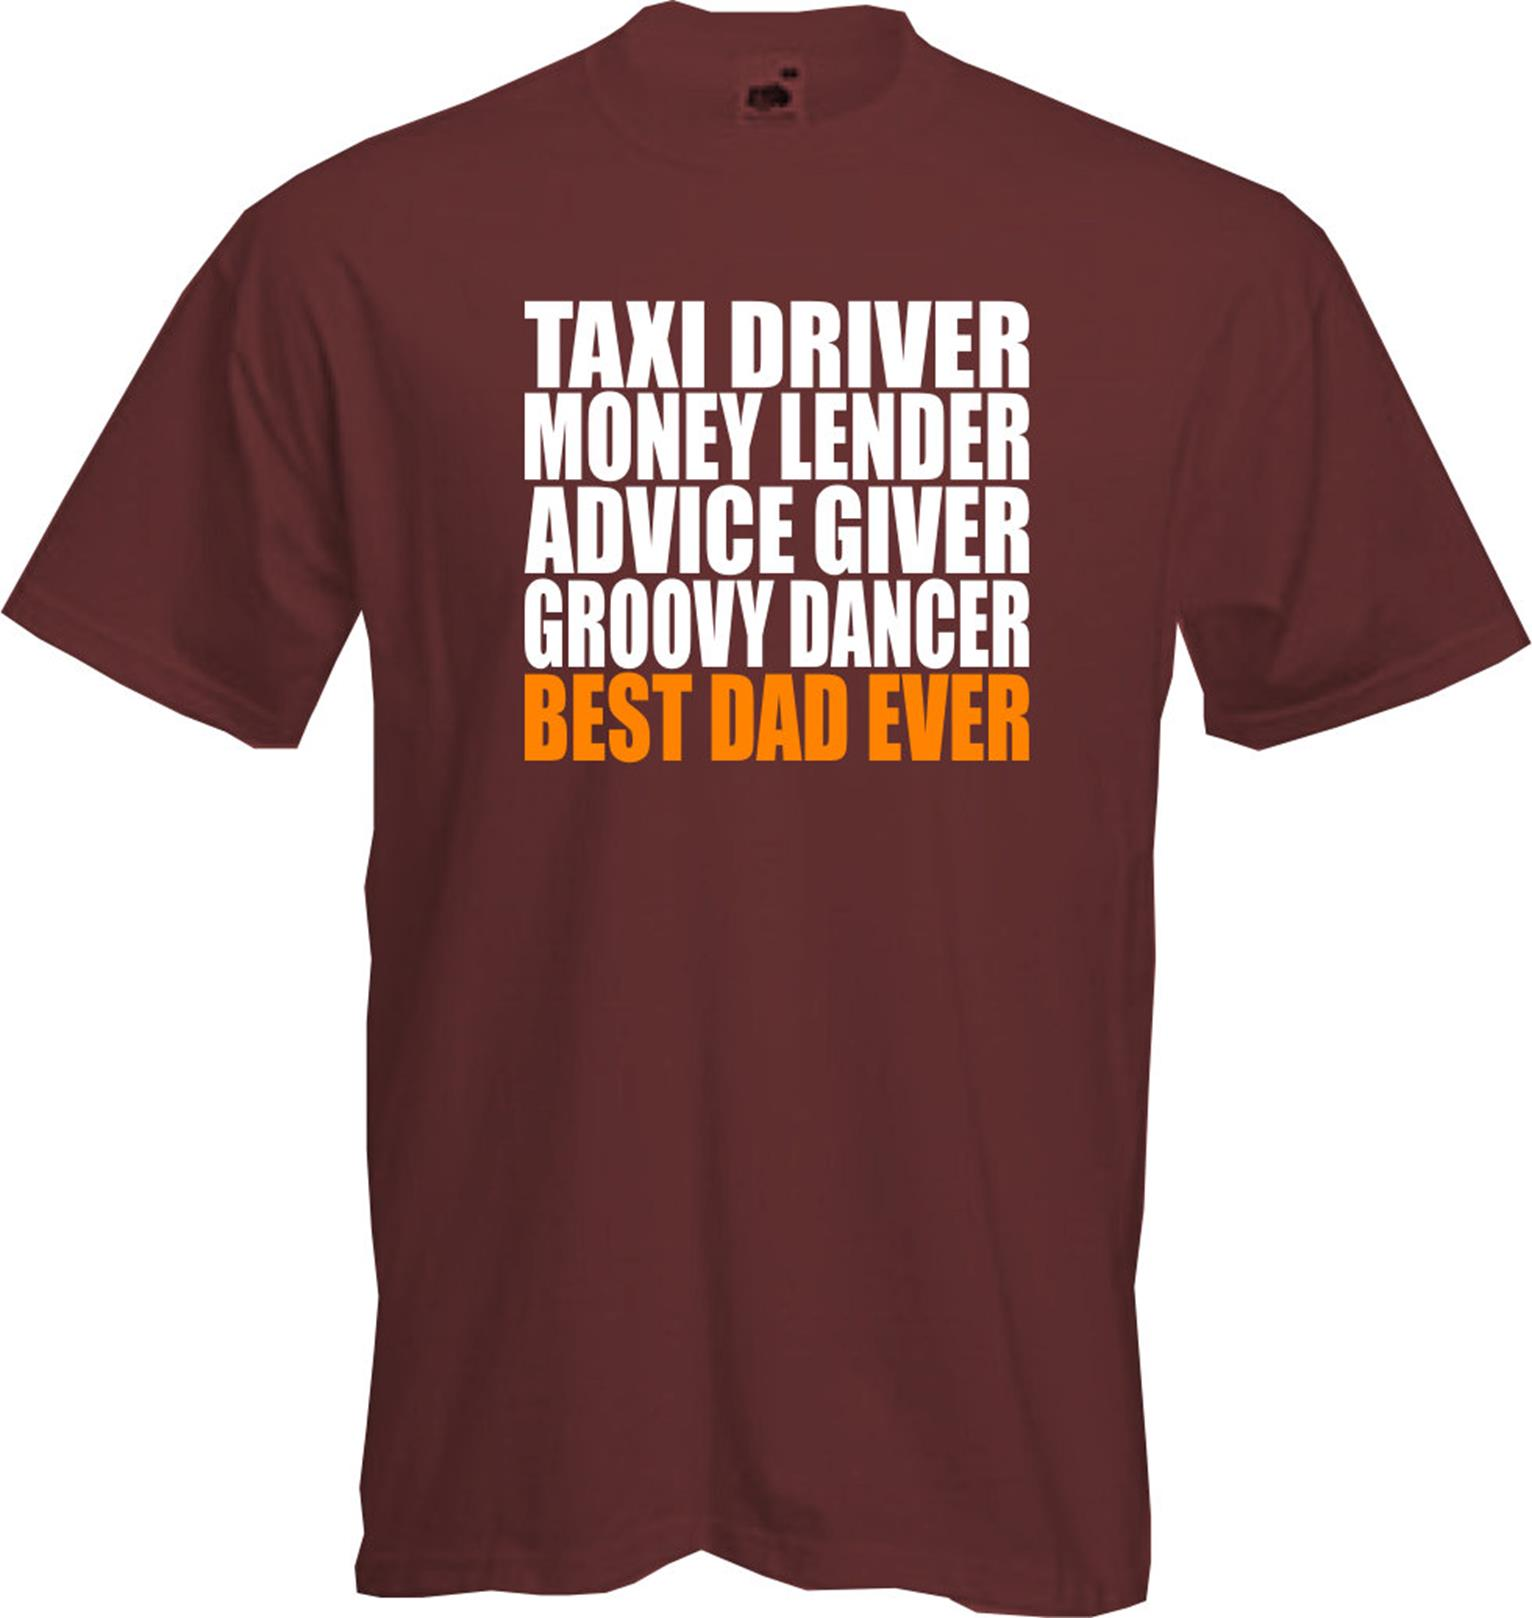 Best dad ever t shirt present fathers day custom for Best custom t shirt